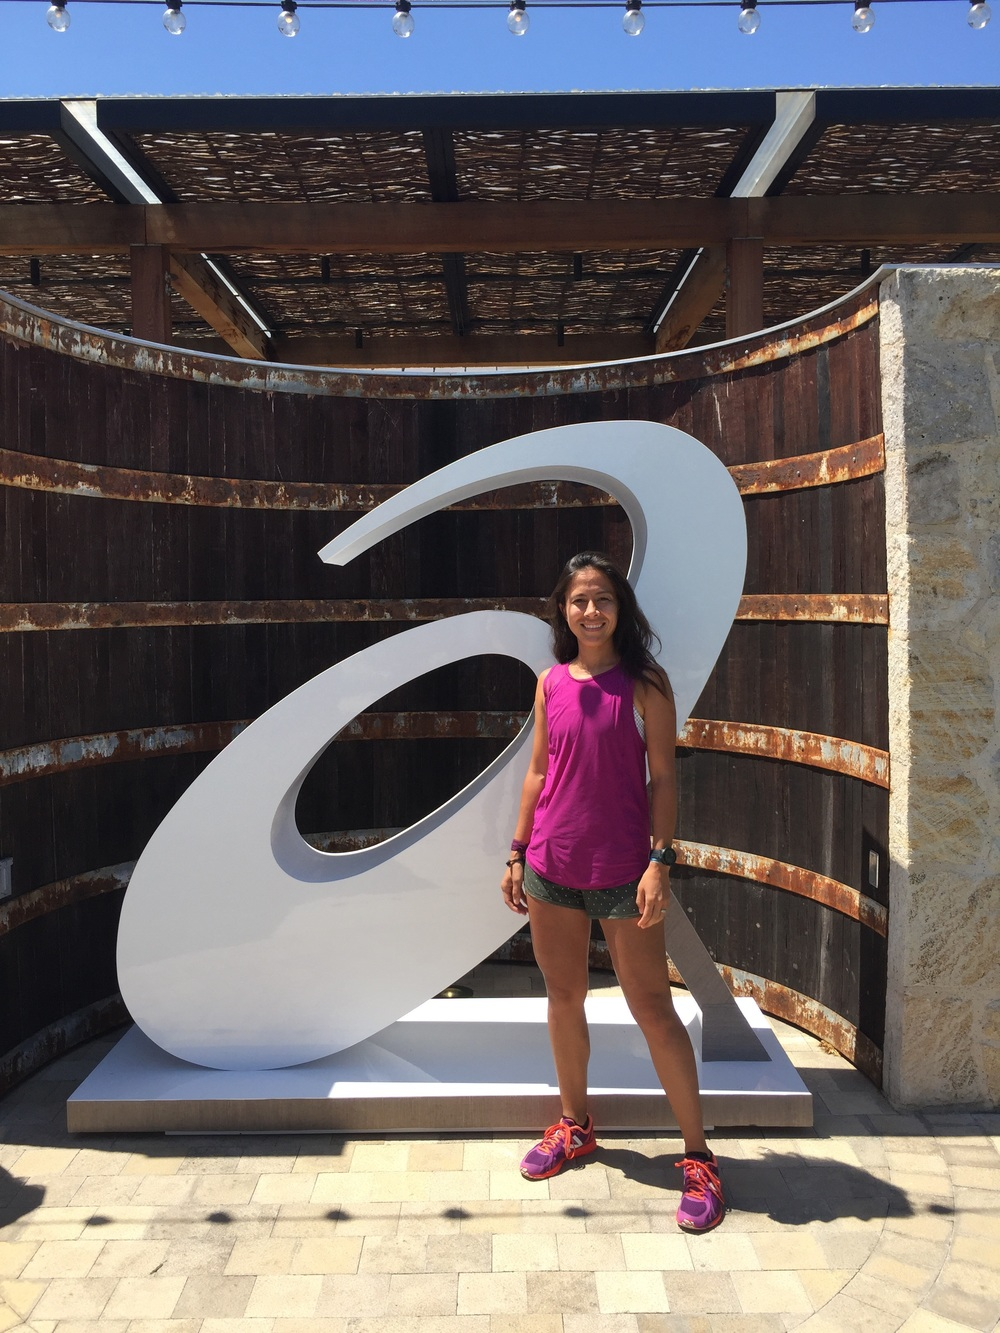 My picture in front of the asics logo wearing lululemon and new balance.